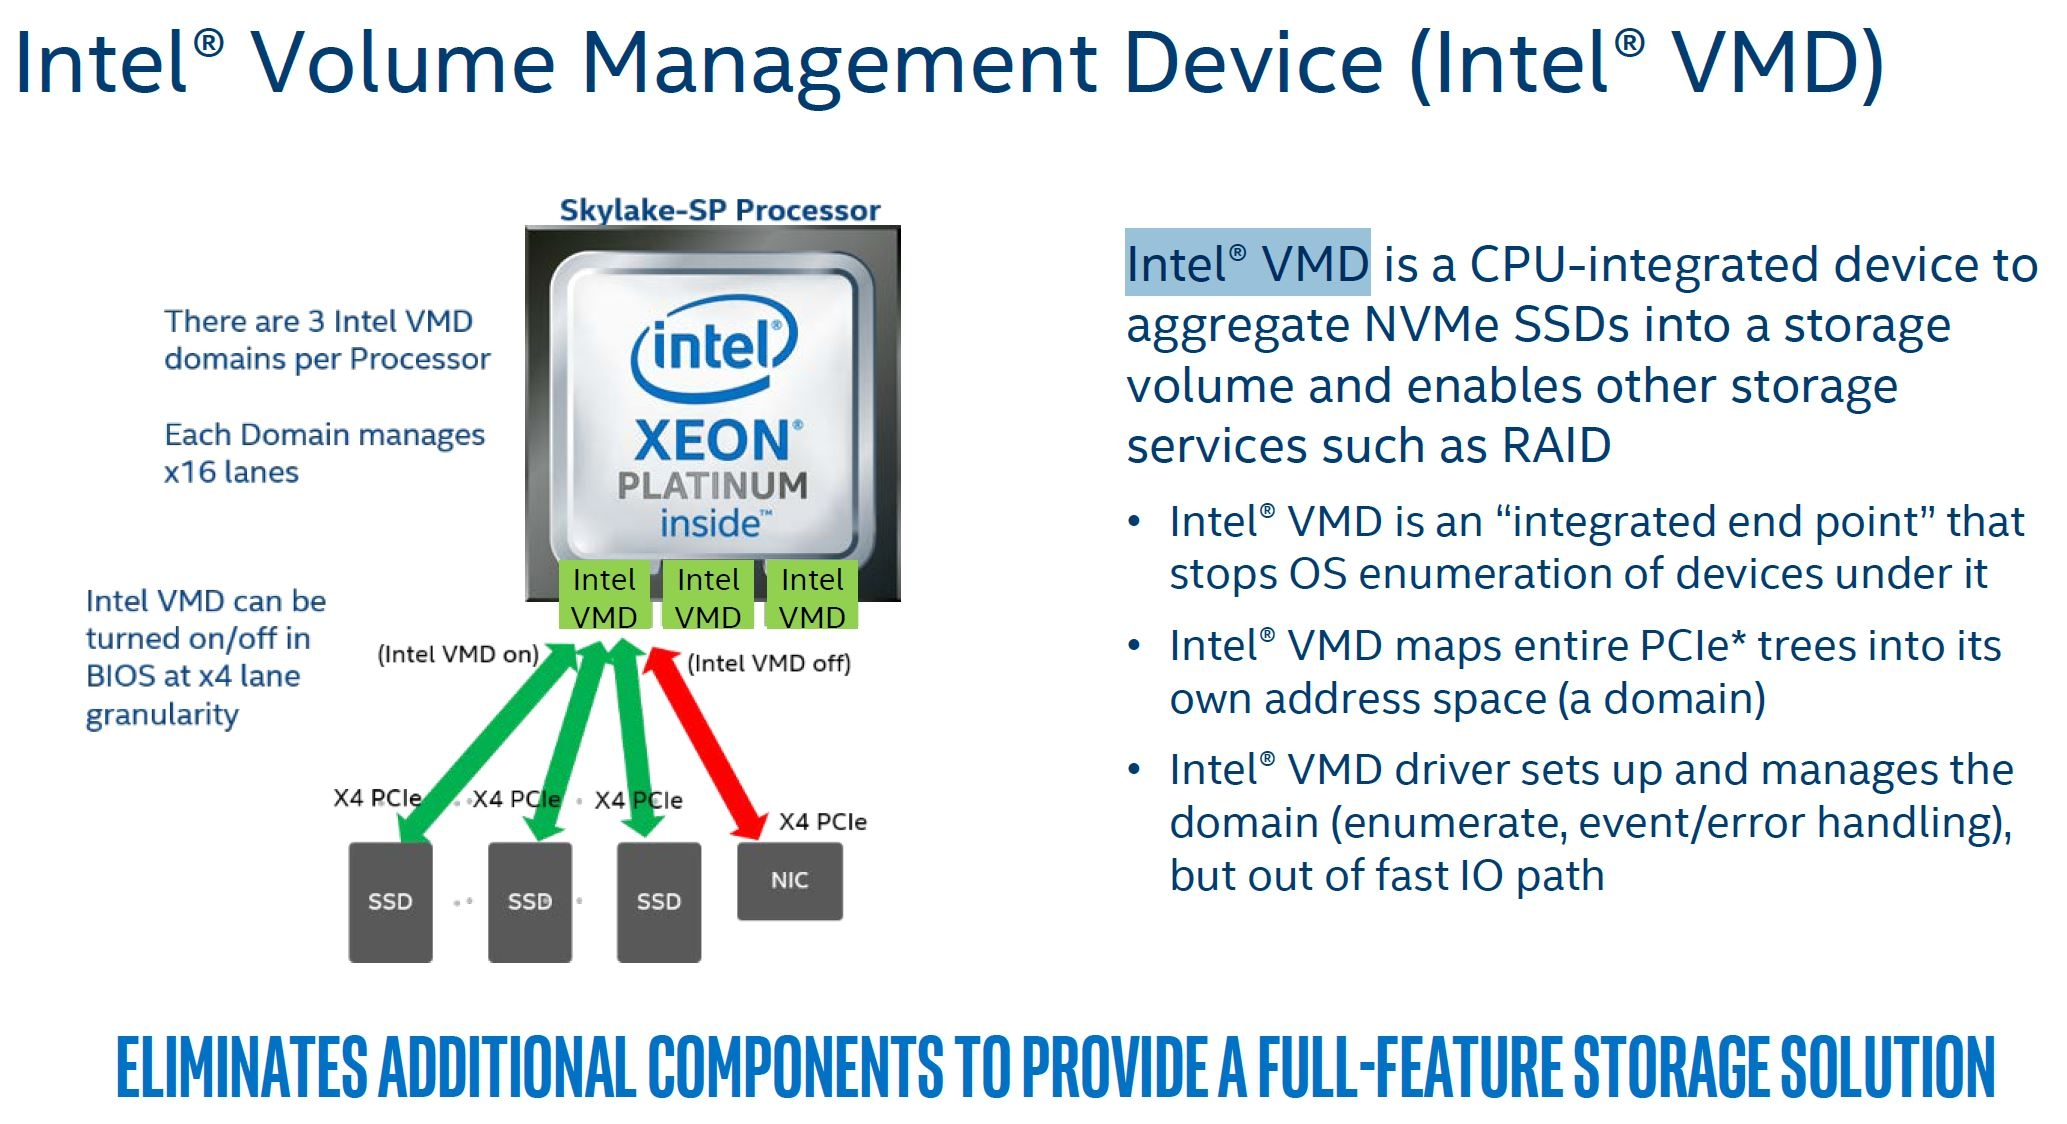 Intel® Volume Management Device (Intel® VMD)